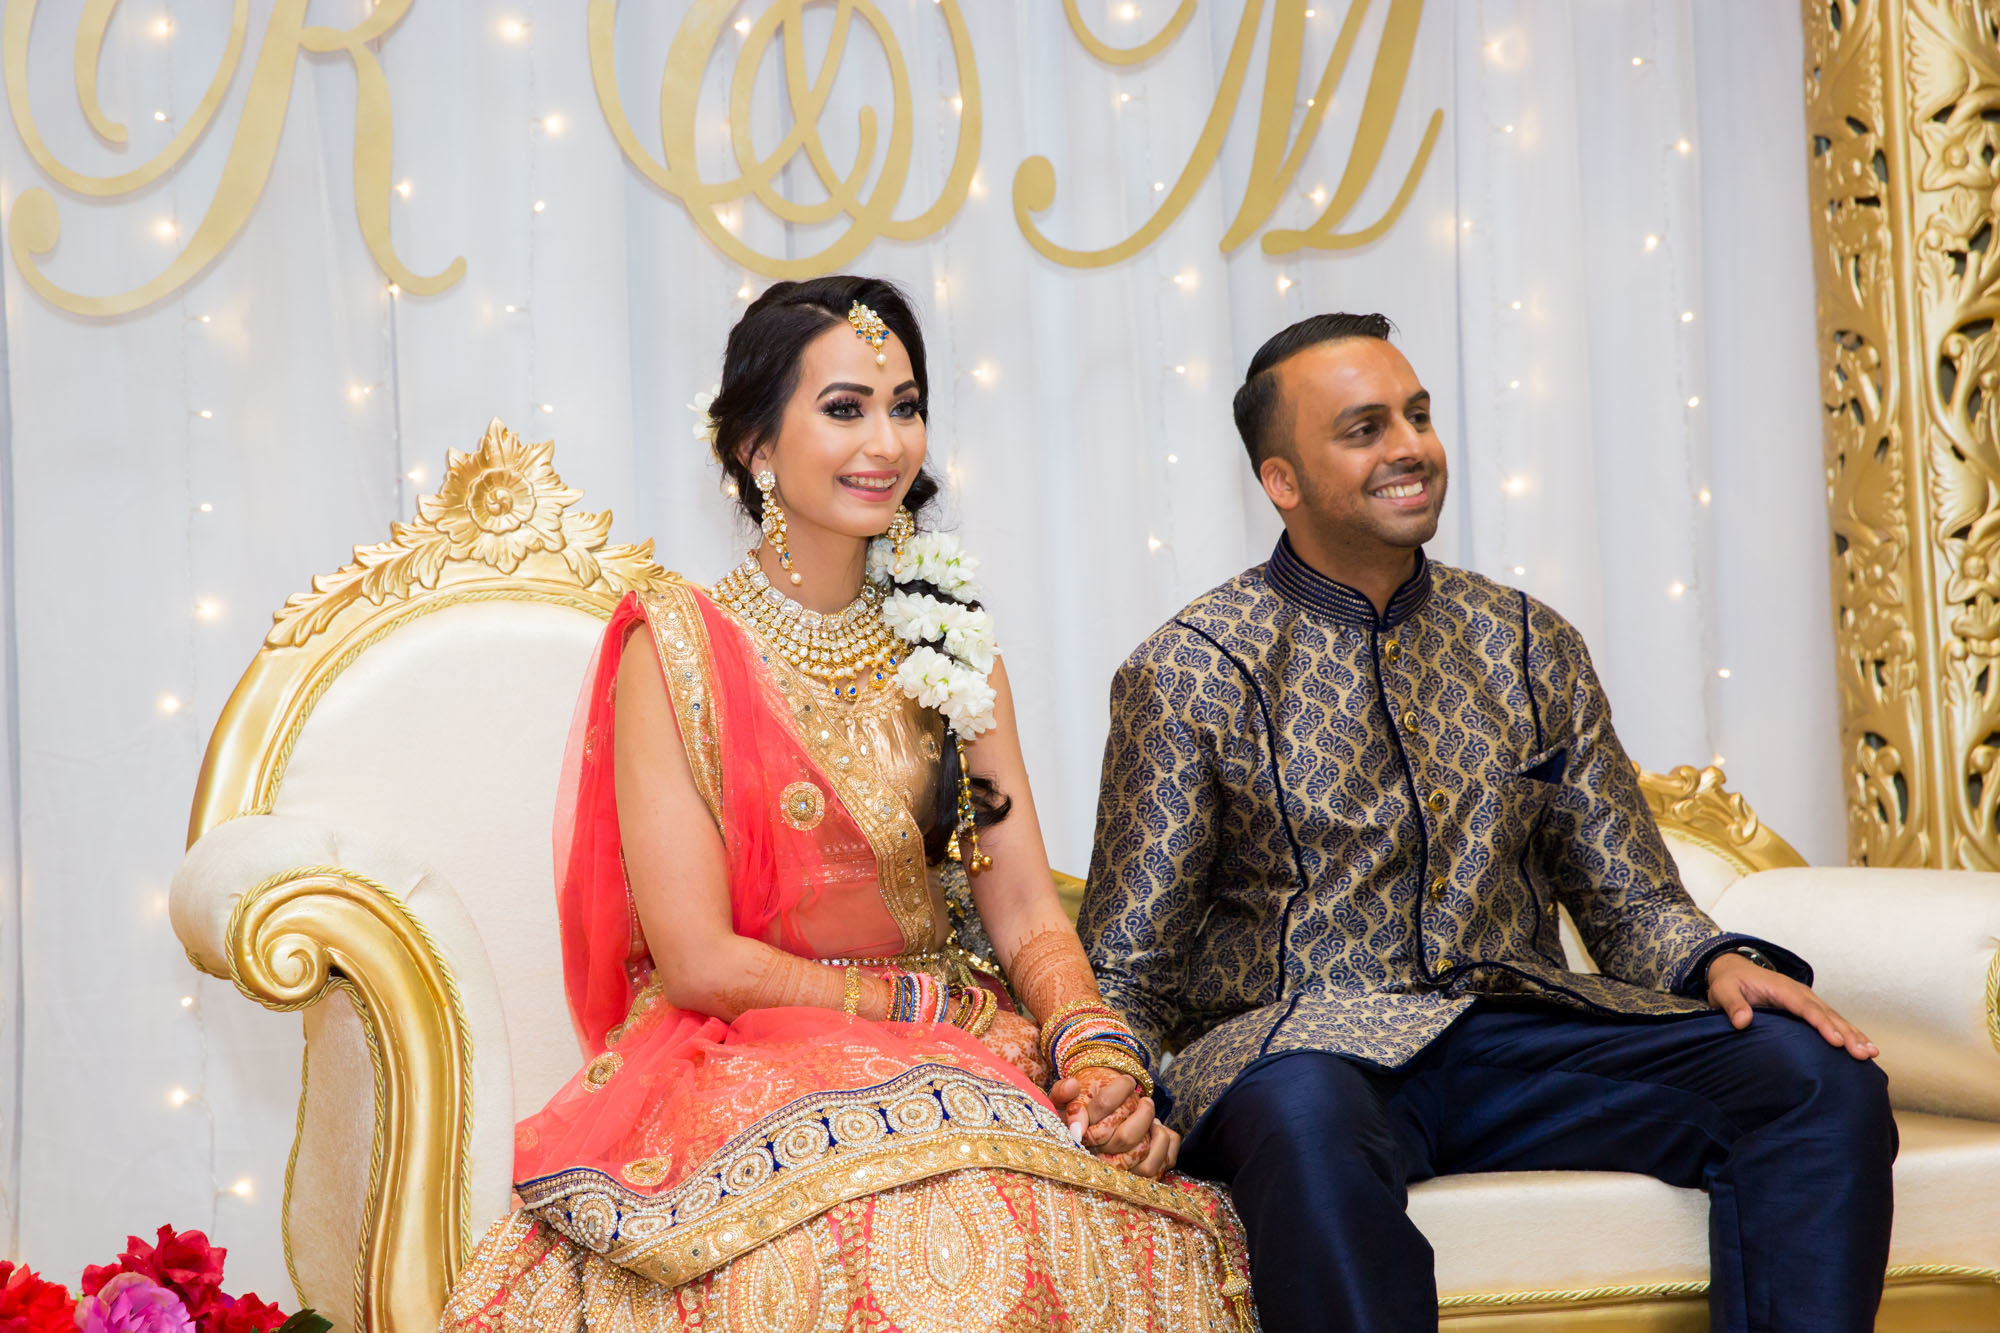 Manisha_Rohil_EngagementCeremony_CorsoNorthlakes_PhotographerAOsetroff_Highlights_Web-50